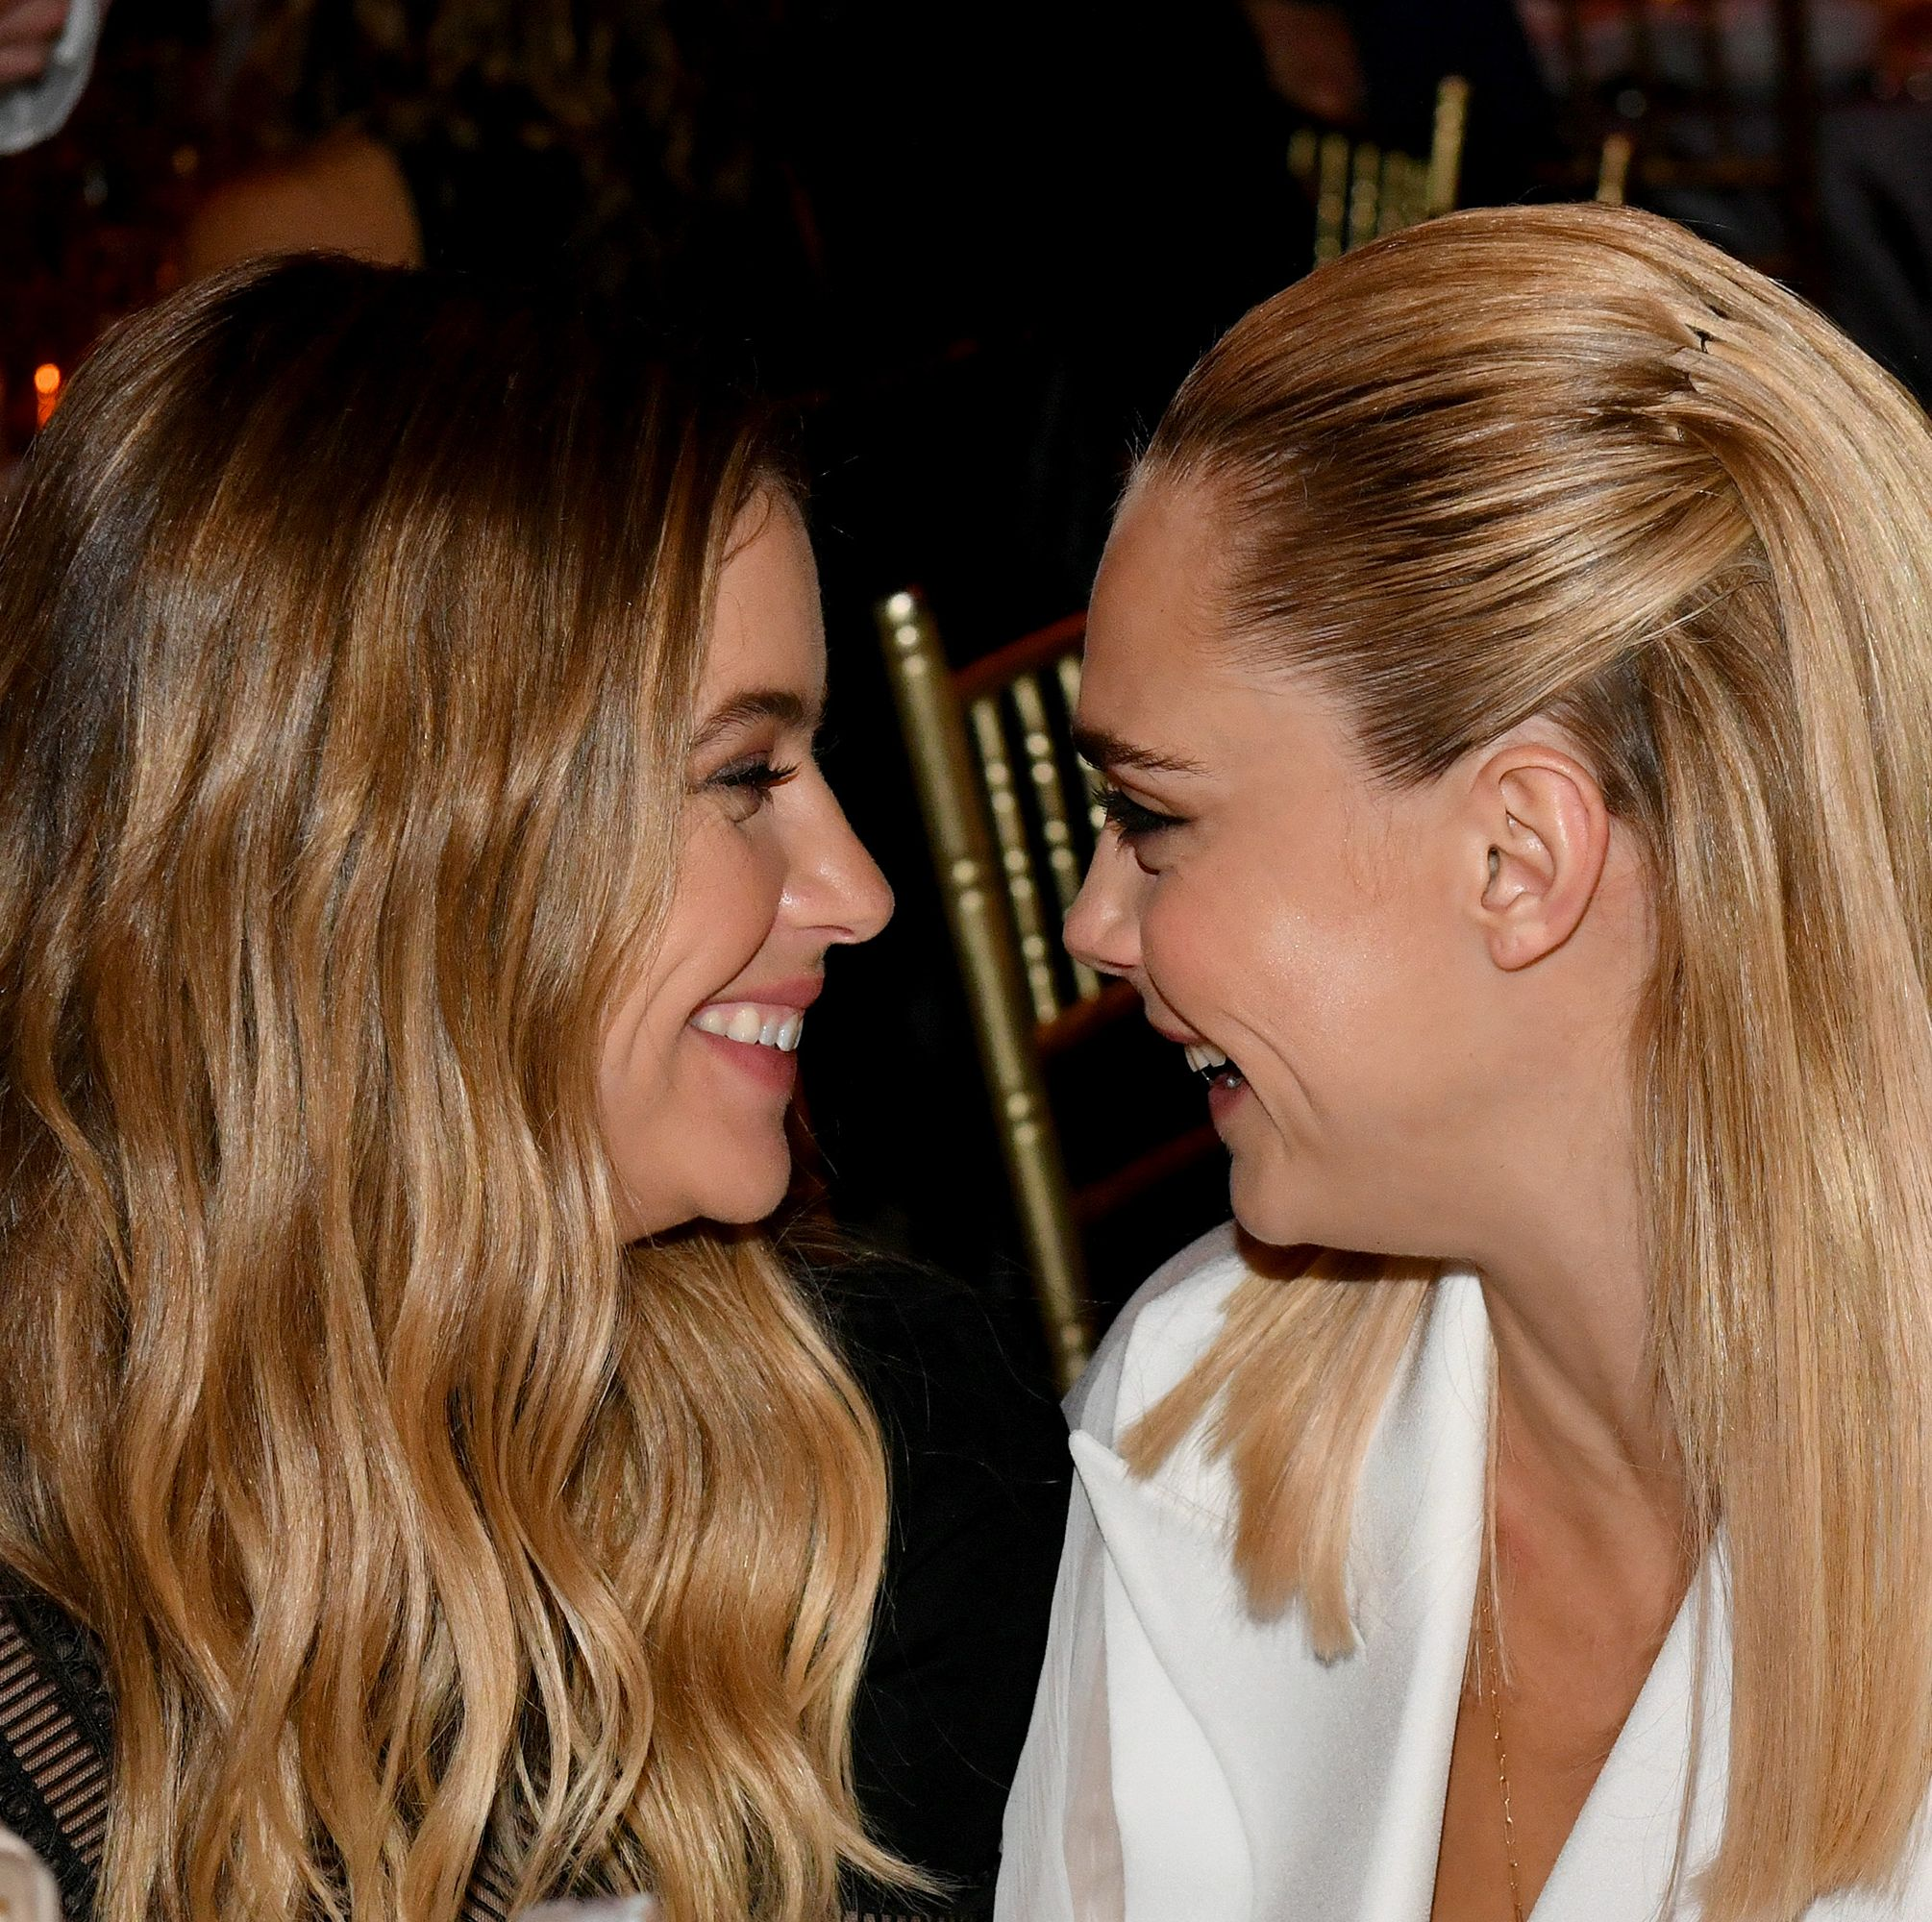 Cara Delevingne on How She and Ashley Benson Fell in Love When They 'Weren't Looking For It'